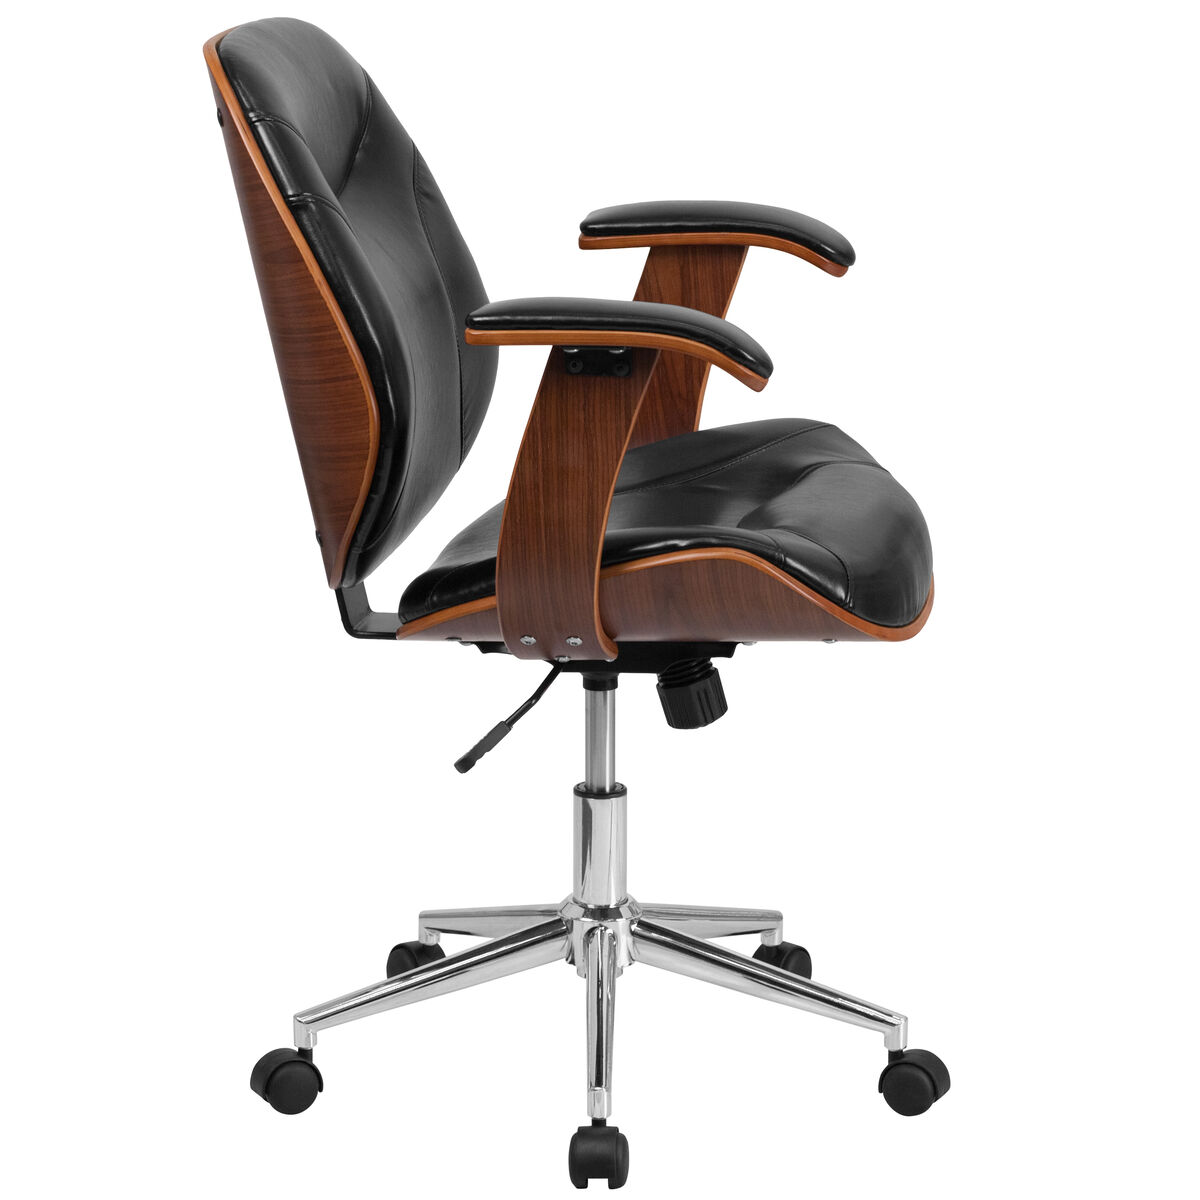 Our Mid Back Black Leather Executive Ergonomic Wood Swivel Office Chair With Arms Is On